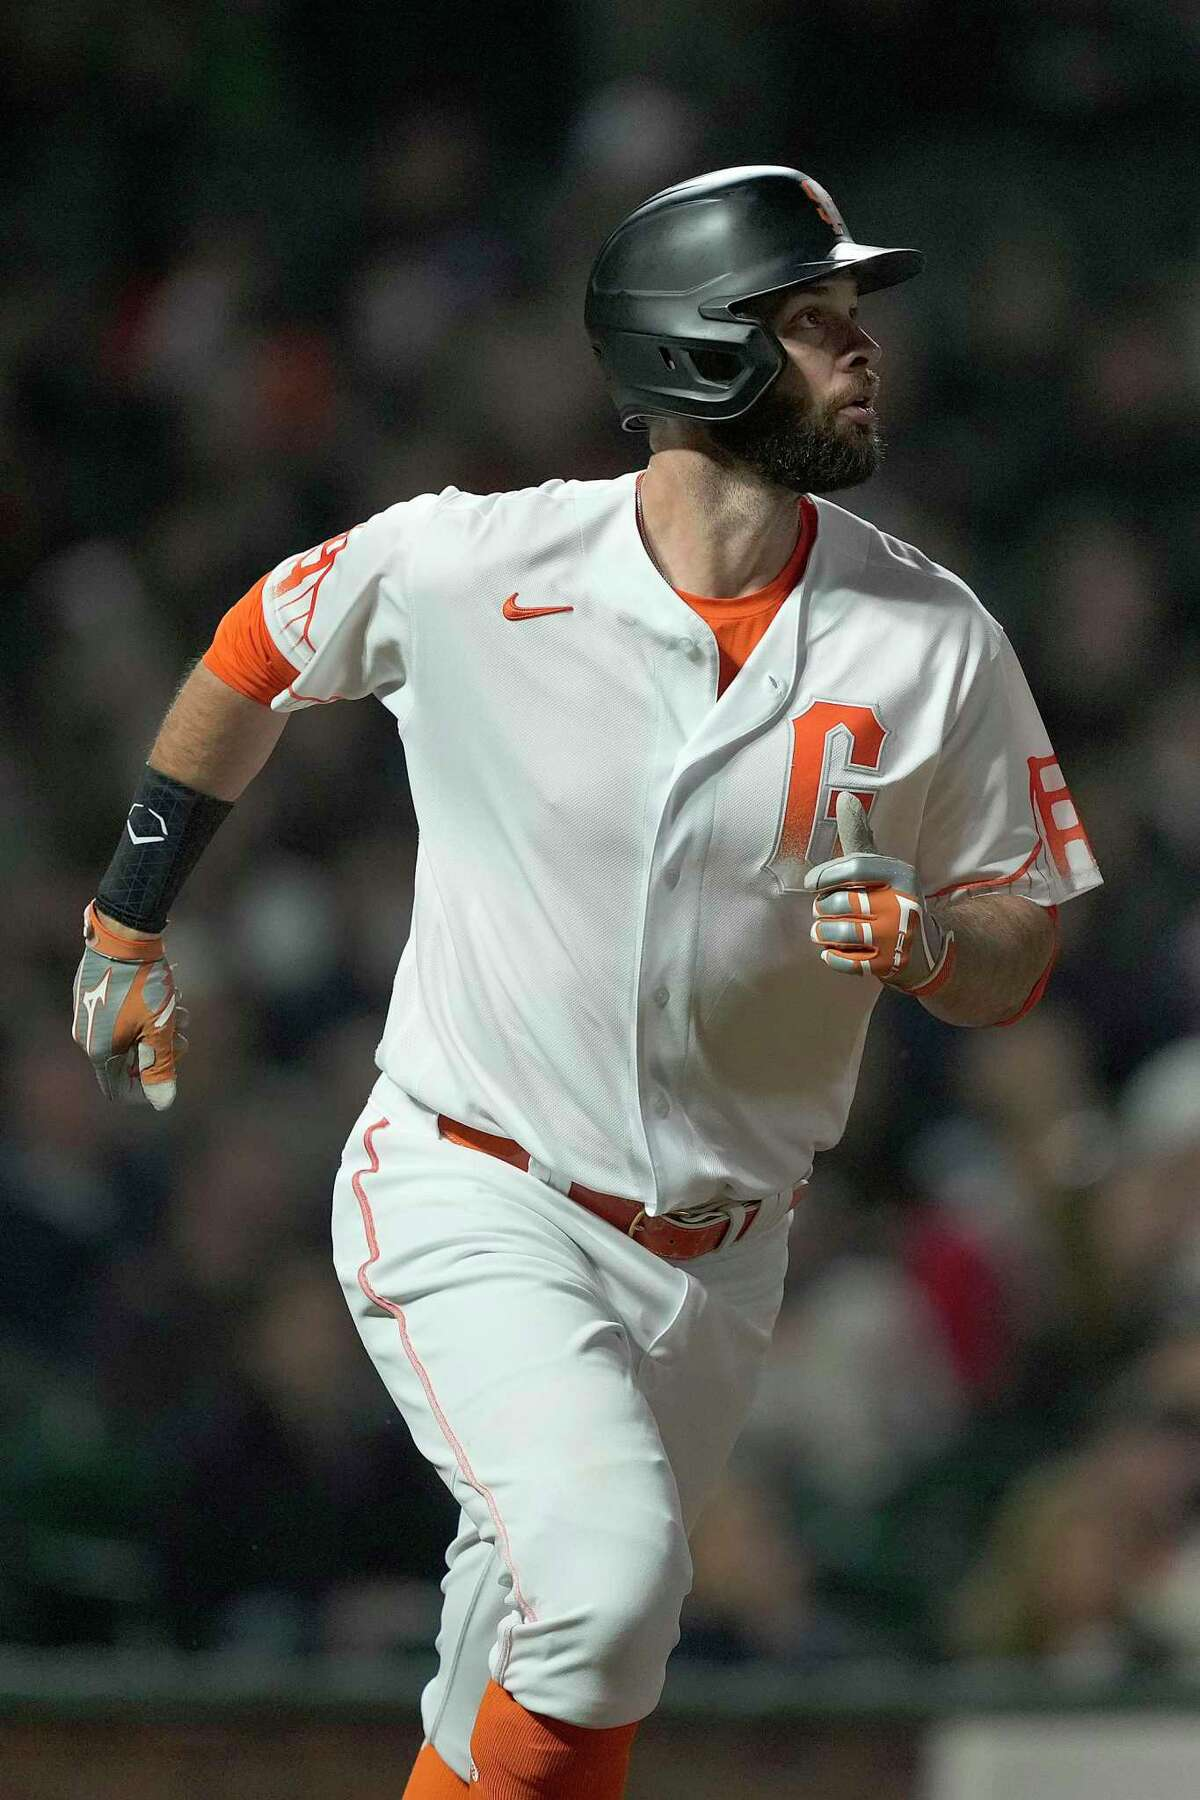 San Francisco Giants' Brandon Belt watches his solo home run against the Milwaukee Brewers during the sixth inning of a baseball game Tuesday, Aug. 31, 2021, in San Francisco. (AP Photo/Tony Avelar)